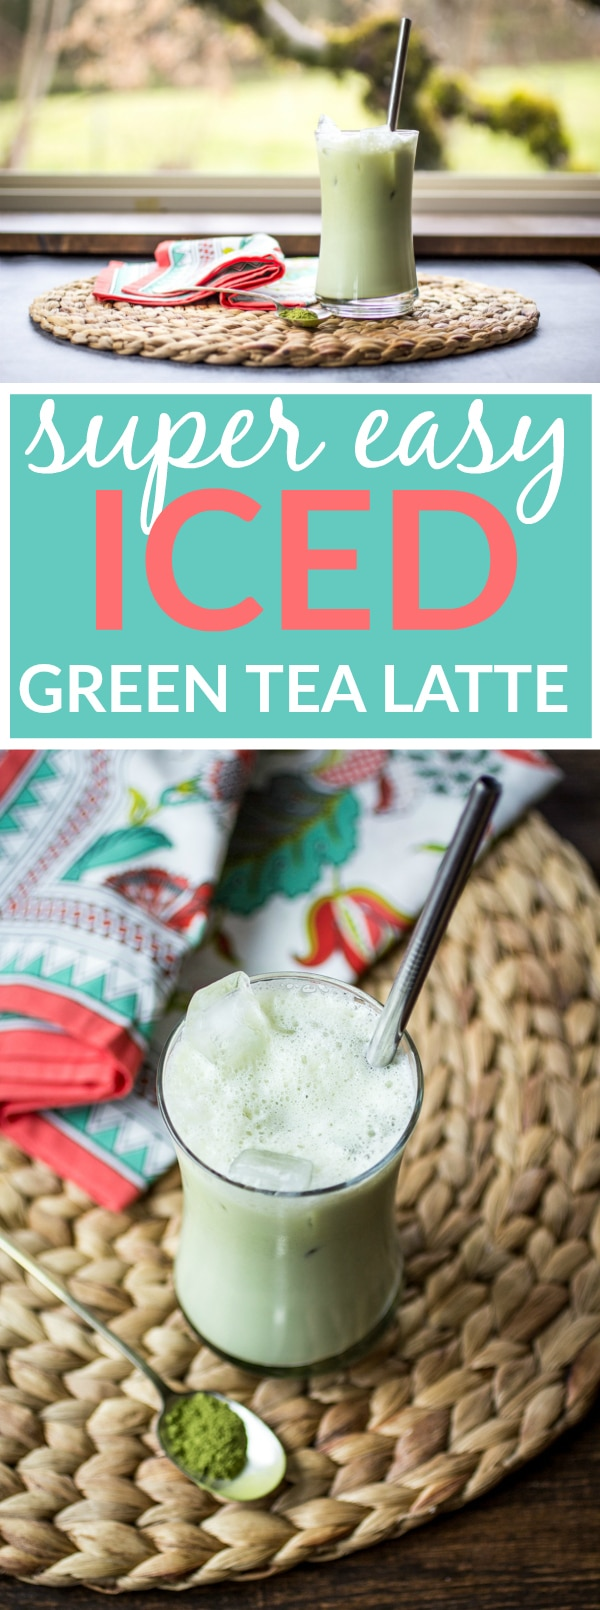 A simple concoction of matcha powder, sugar, milk, and ice makes up this easy ice green tea latte!